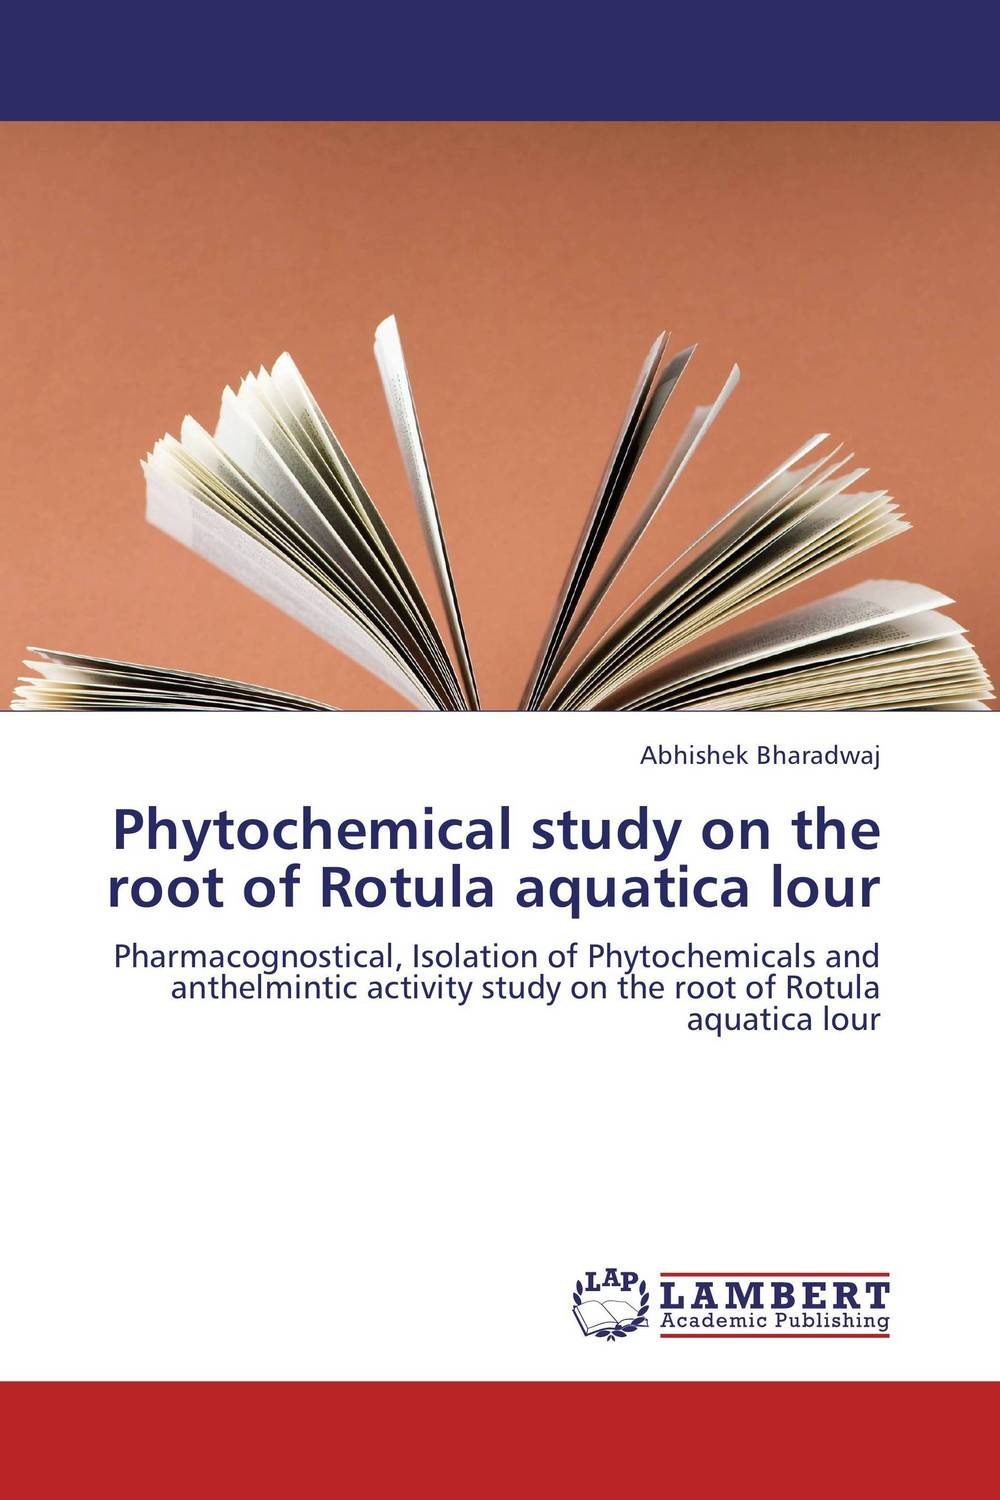 Phytochemical study on the root of Rotula aquatica lour the teeth with root canal students to practice root canal preparation and filling actually